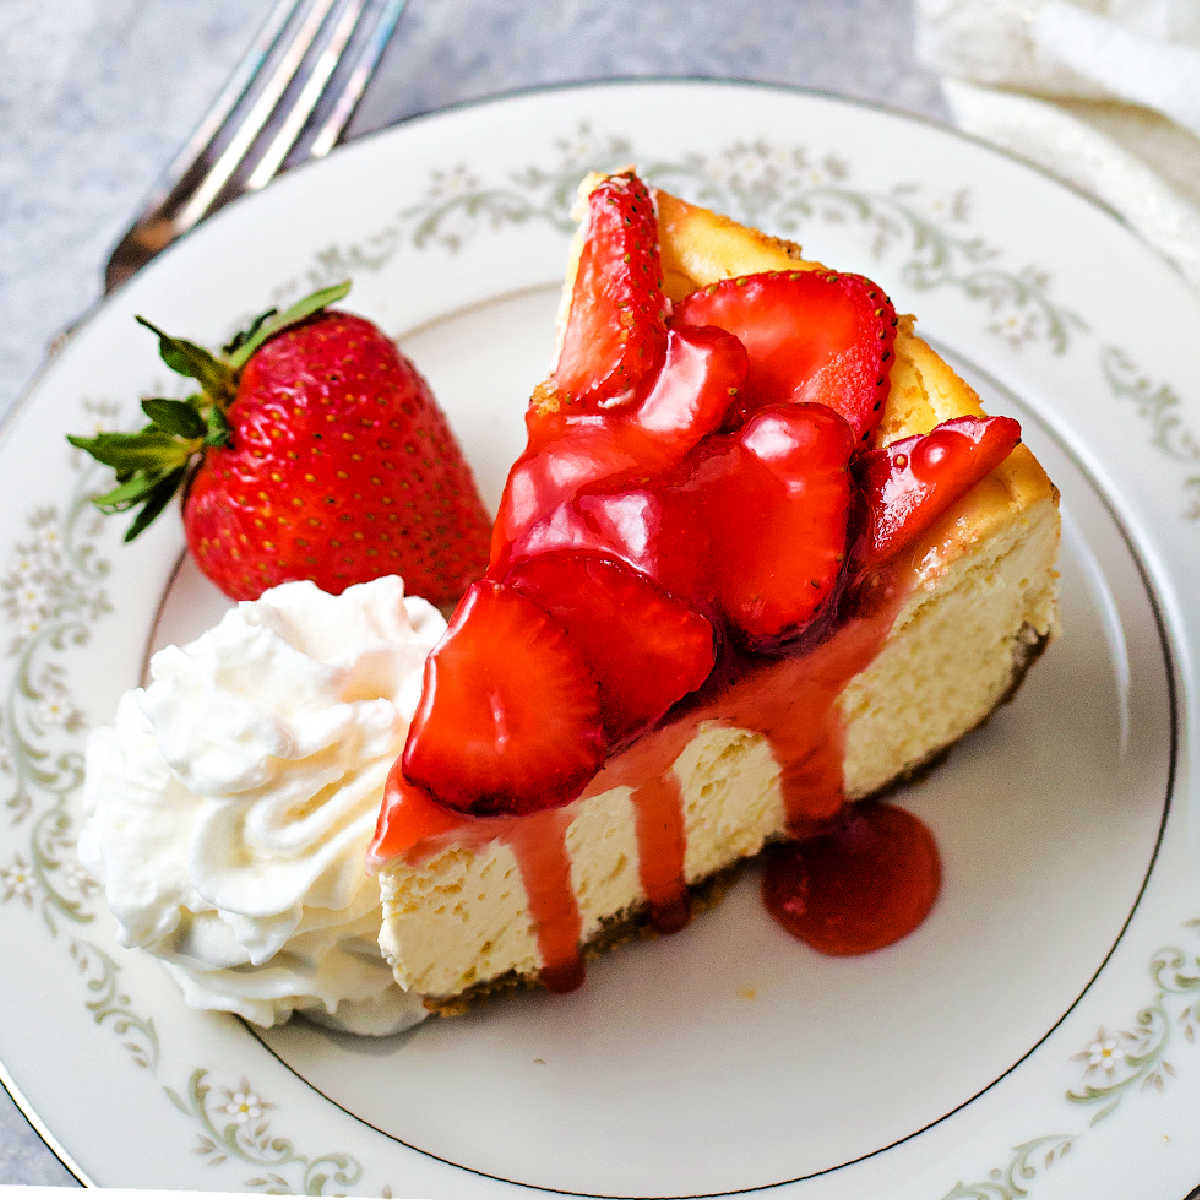 a slice of strawberry cheesecake on a china plate with a mound of whipped cream on the side.